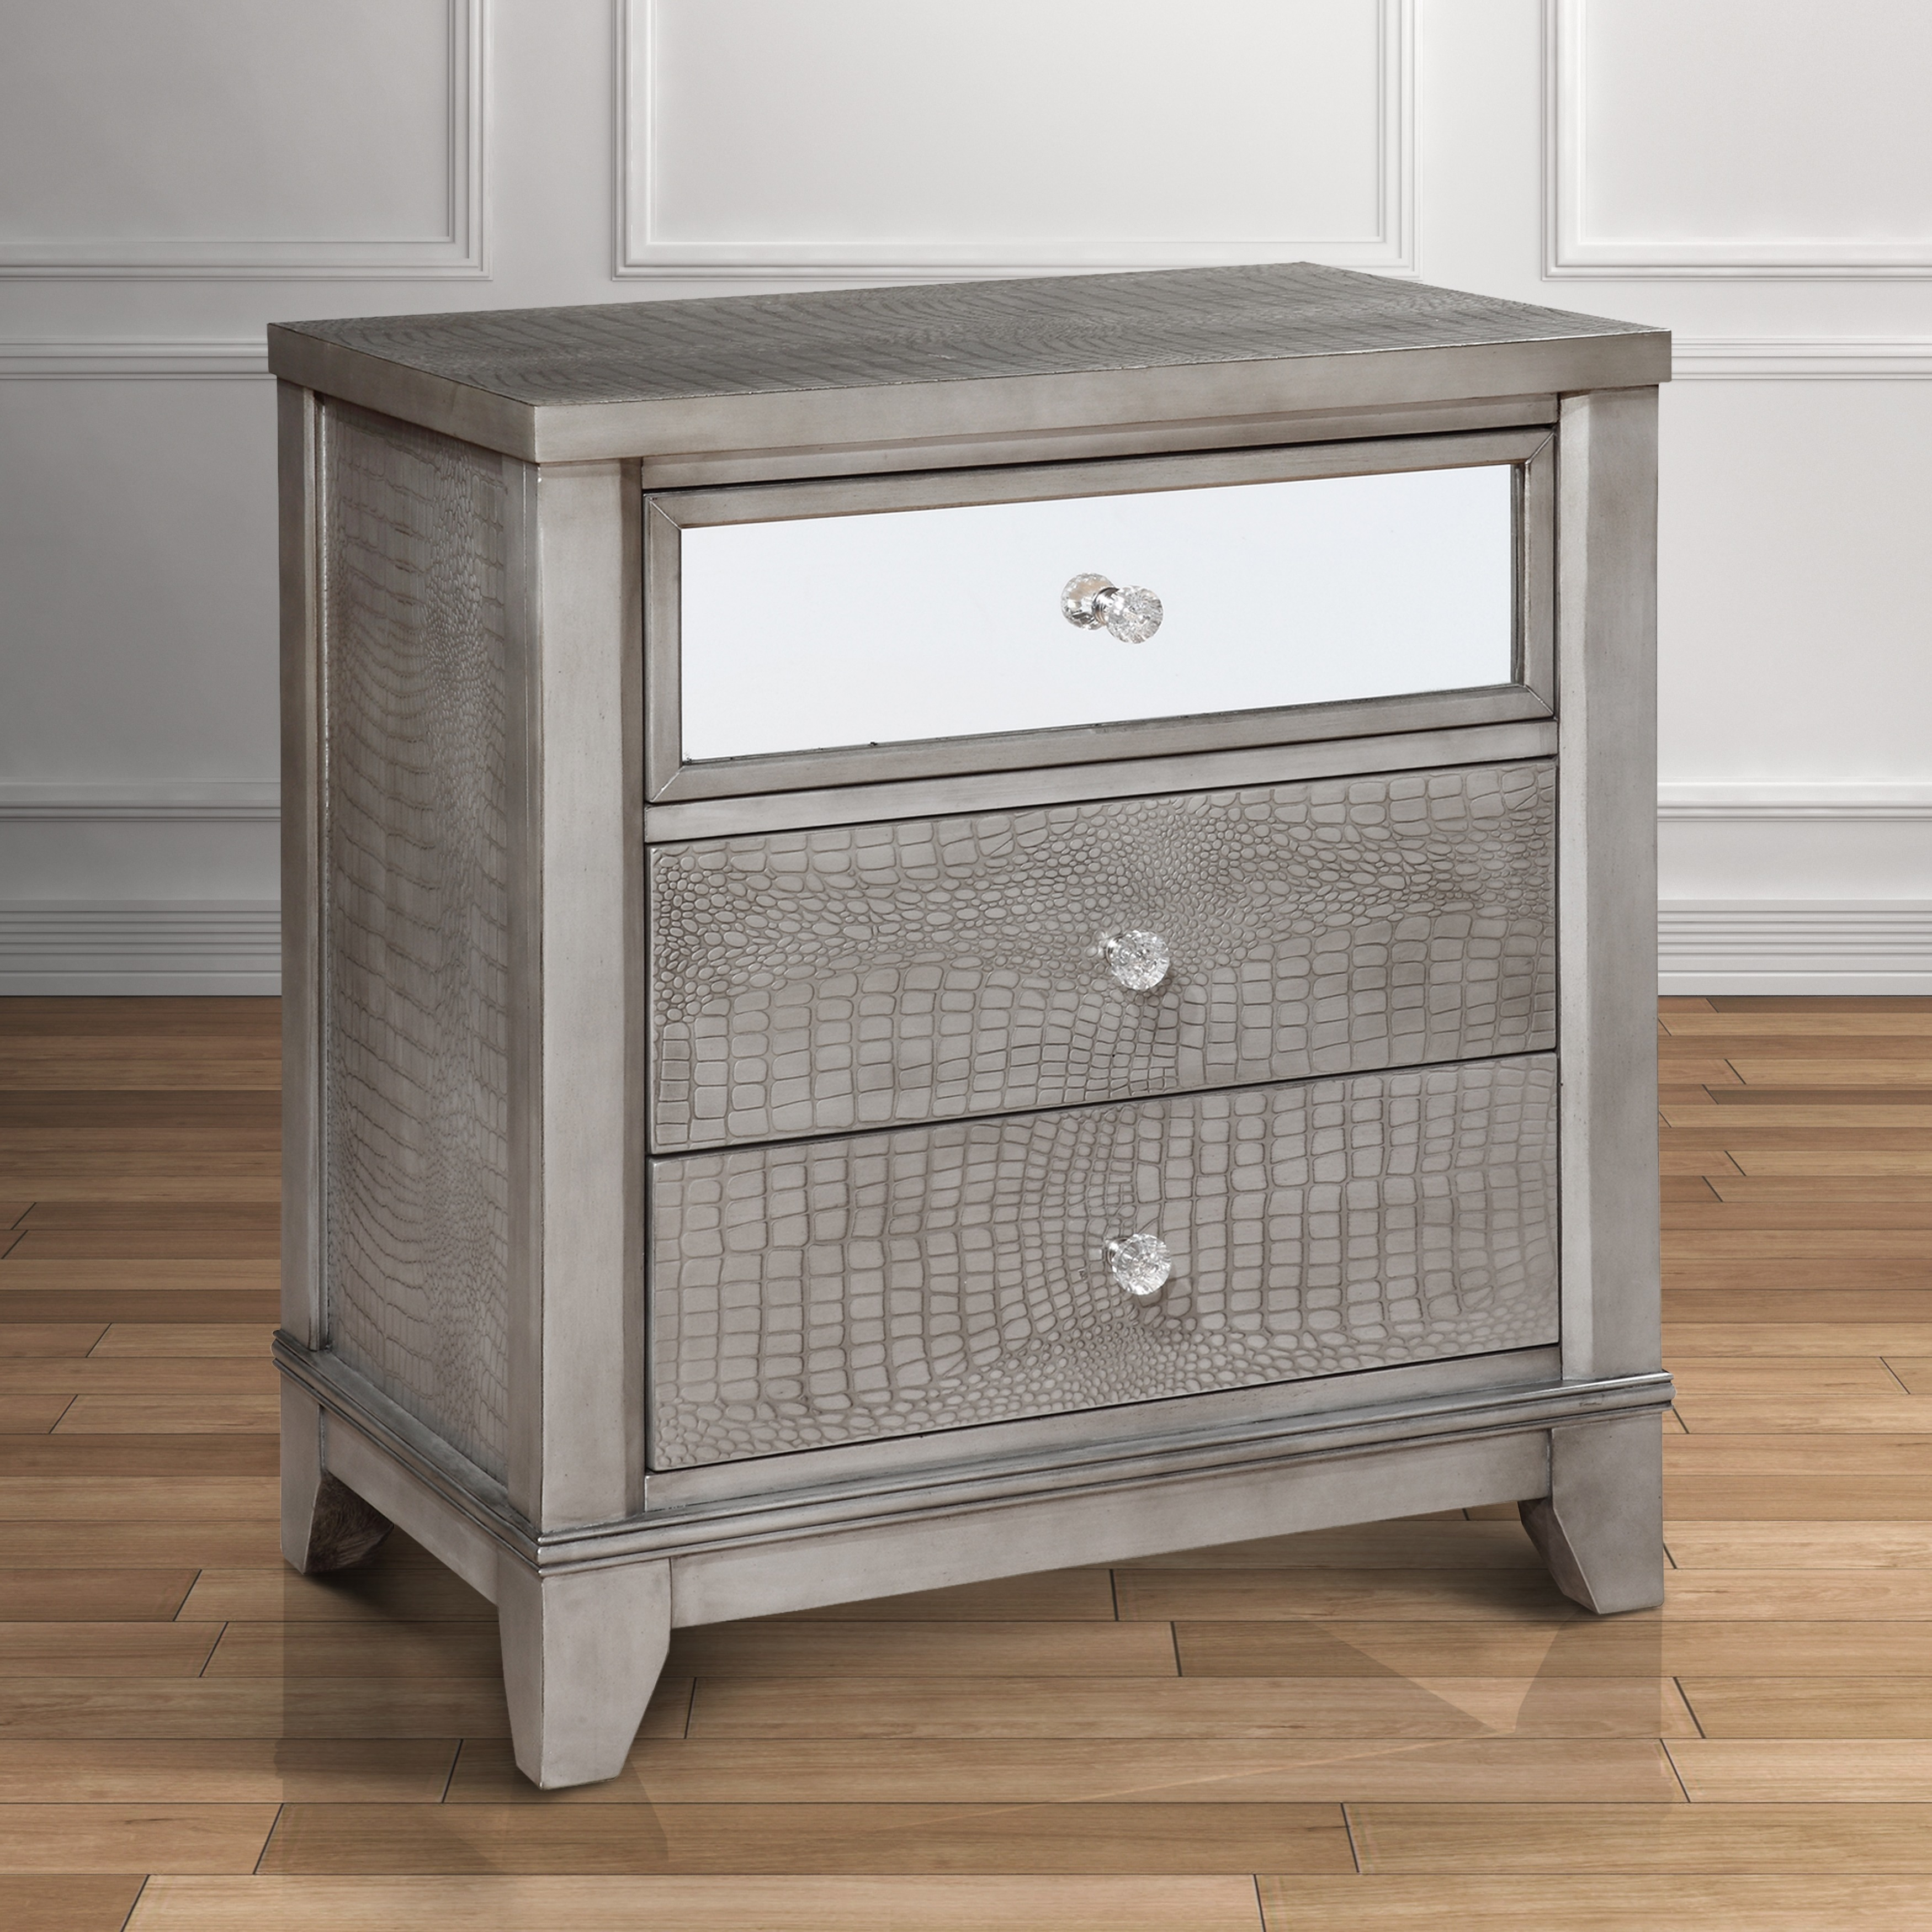 Furniture of America Divonne Modern Crocodile Silver 3-Drawer Nightstand